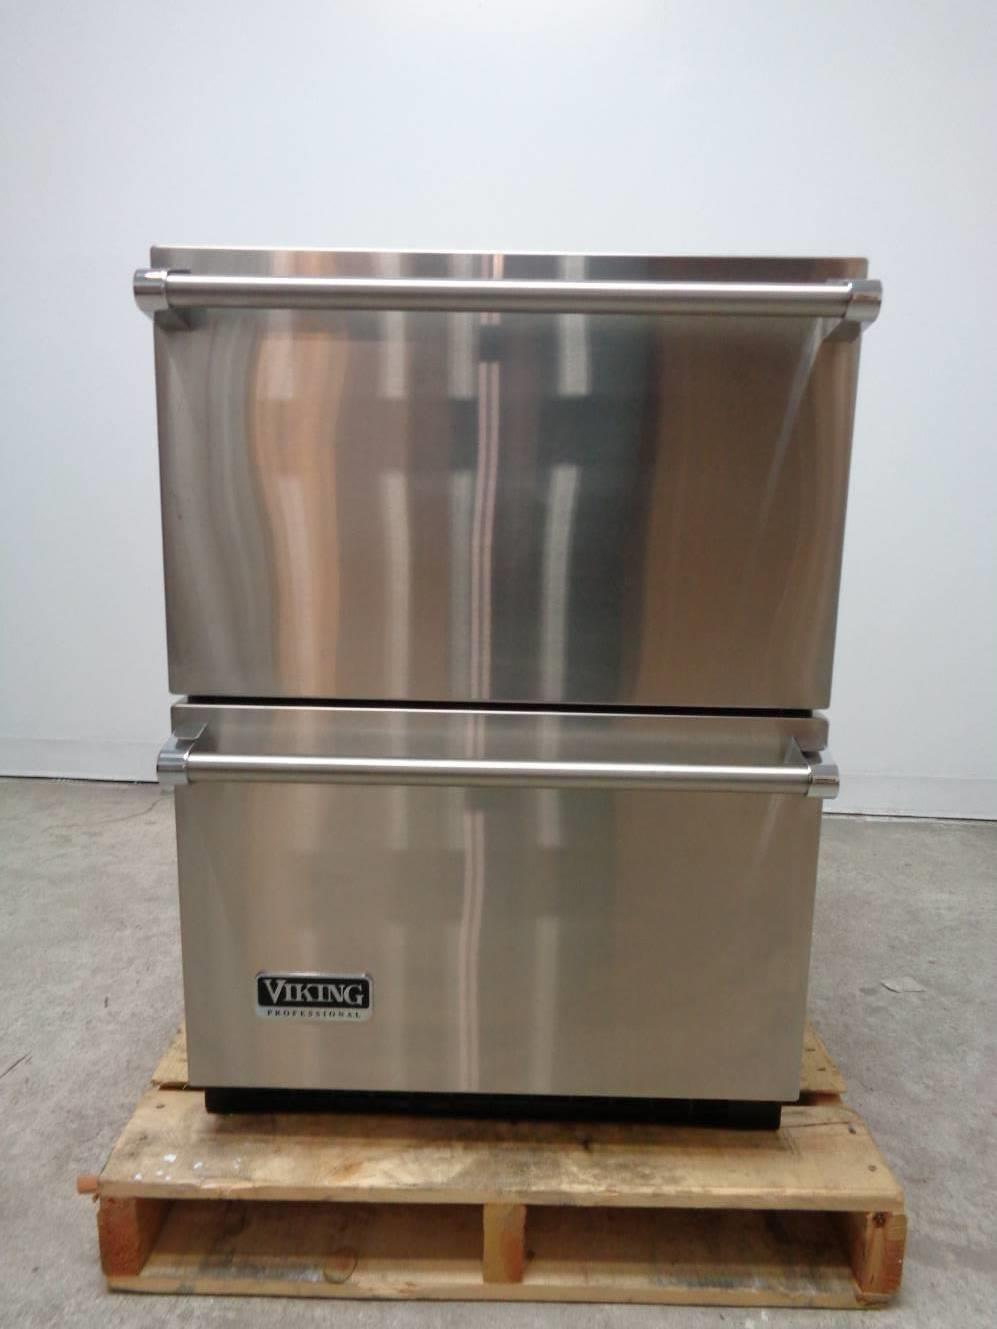 Viking Professional Series Vurd1441dss 24 Inch Double